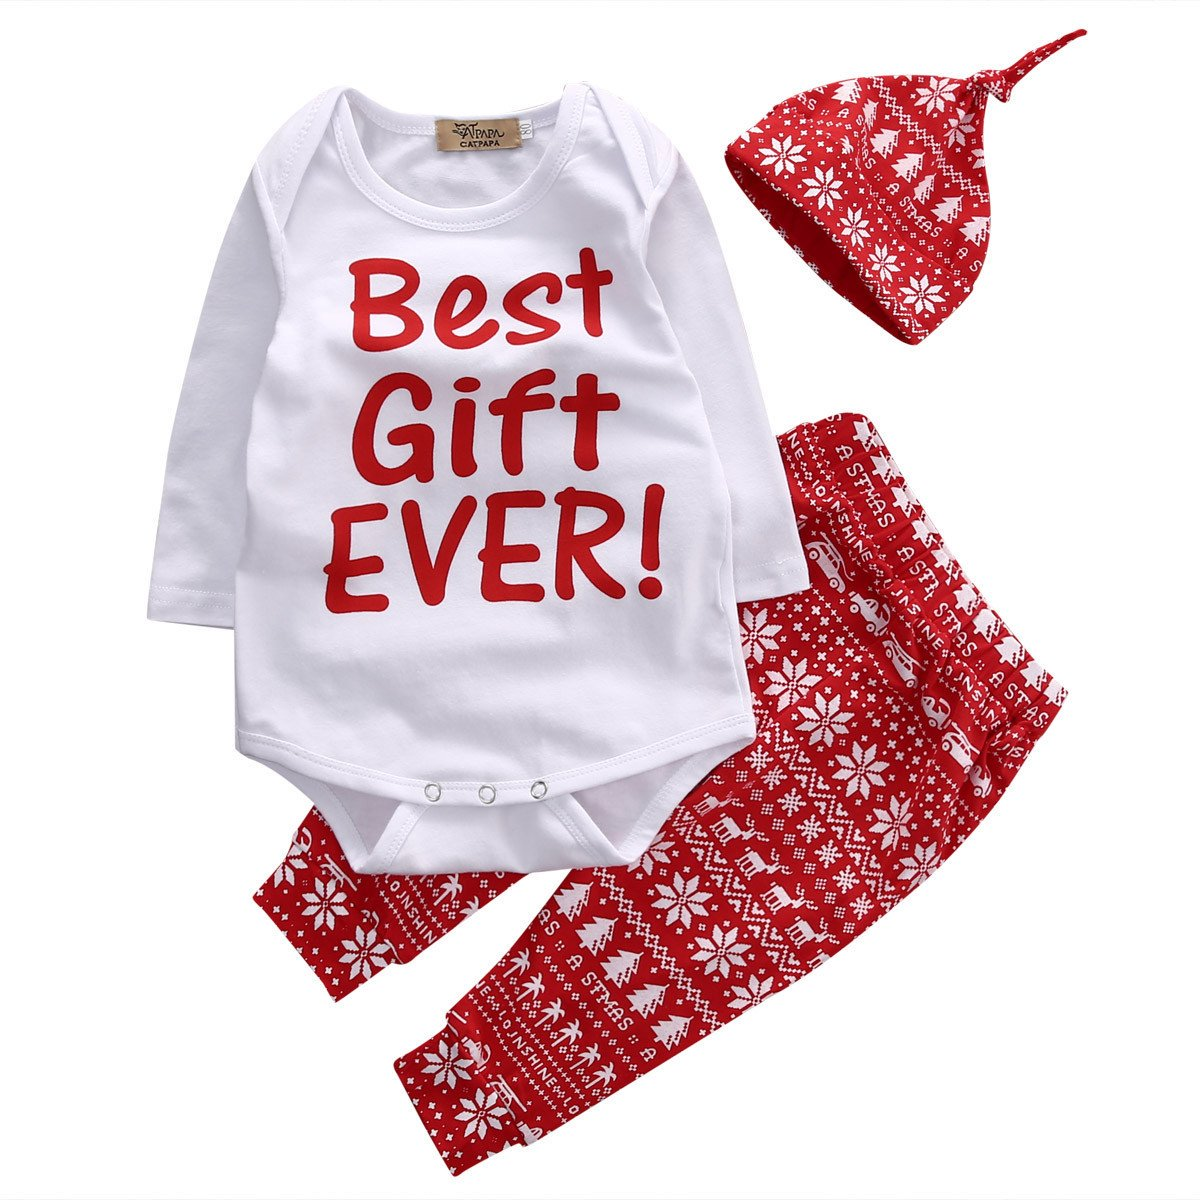 Best Gift Christmas Three Piece Set #Baby #Style #Fashion #MommyandMe #Boutique #Shopping #Mommy  ➤  https:// goo.gl/z1Cyps  &nbsp;   via @outfy<br>http://pic.twitter.com/UxvlPj14EE